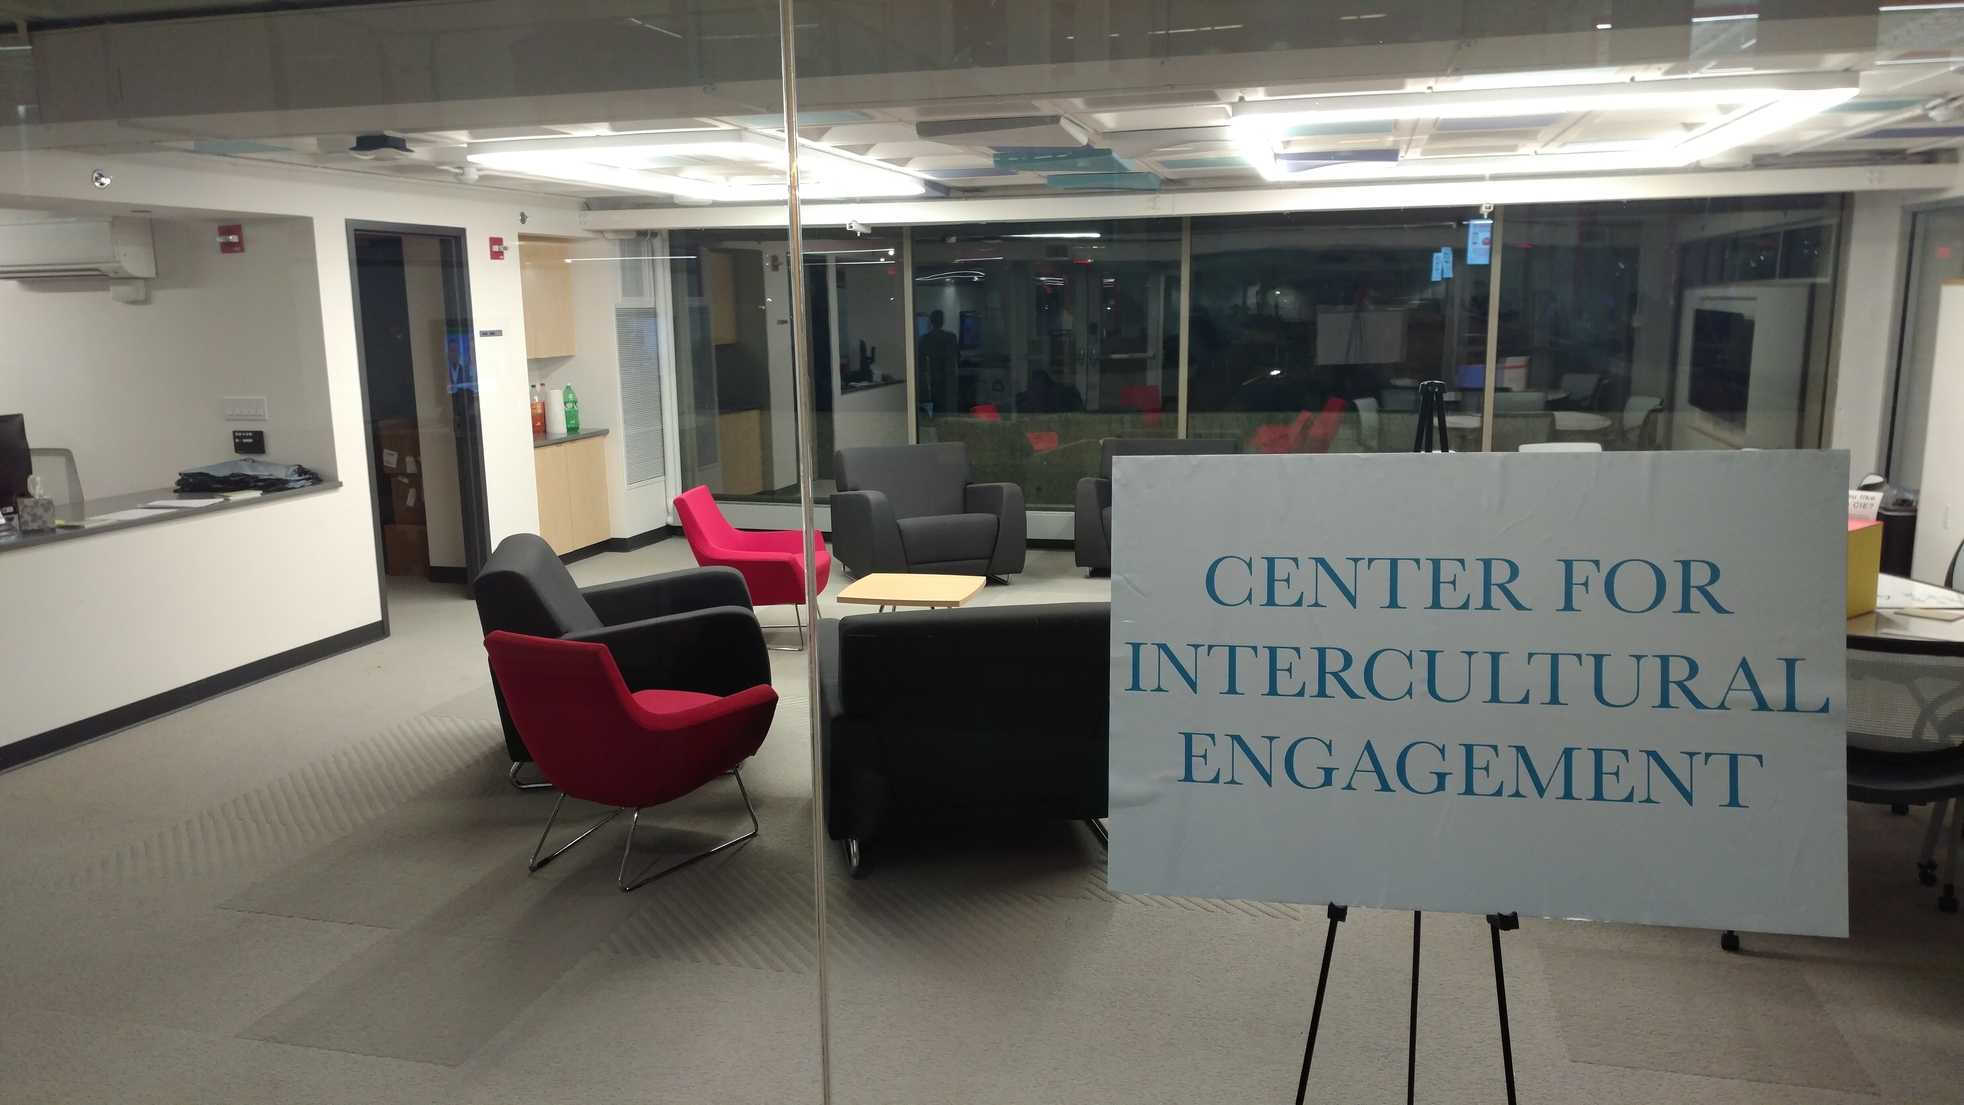 The town hall meeting was held in the Center for Intercultural Engagement.